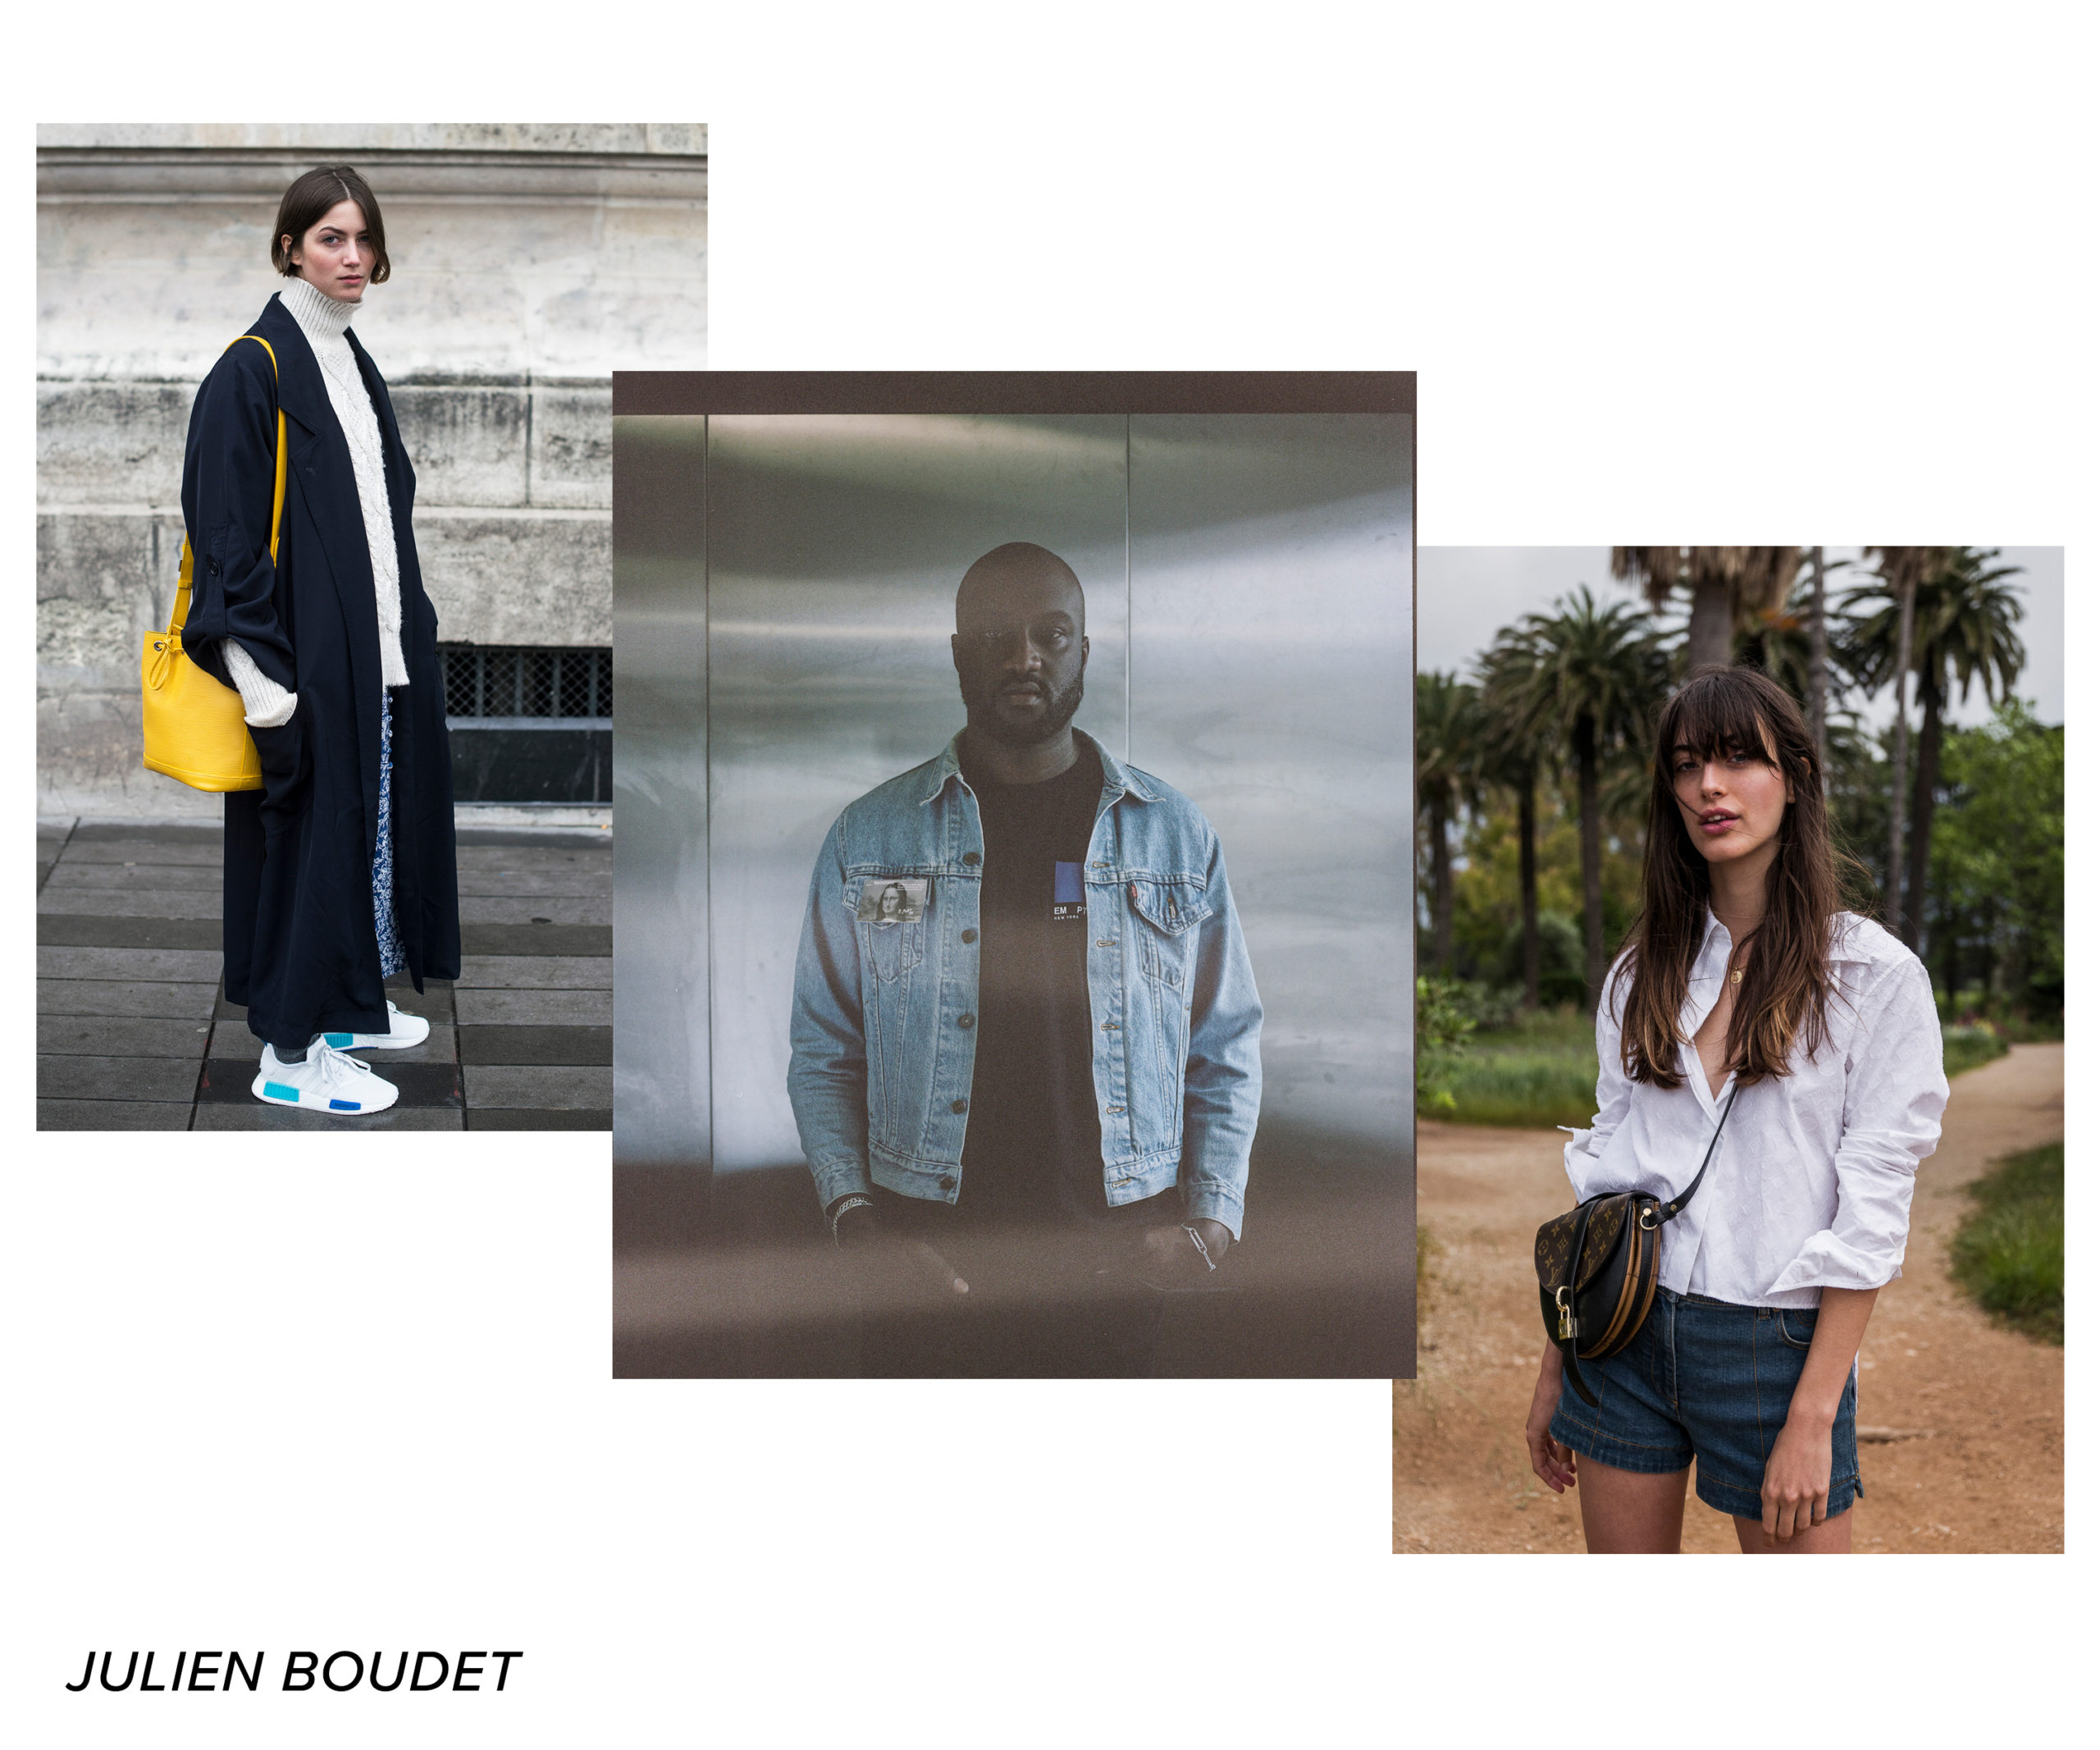 Julien Boudet (1) - Bleu Mode - 19 Photographers Taking Photos of Your Favorite Models and Designers - FilterGrade